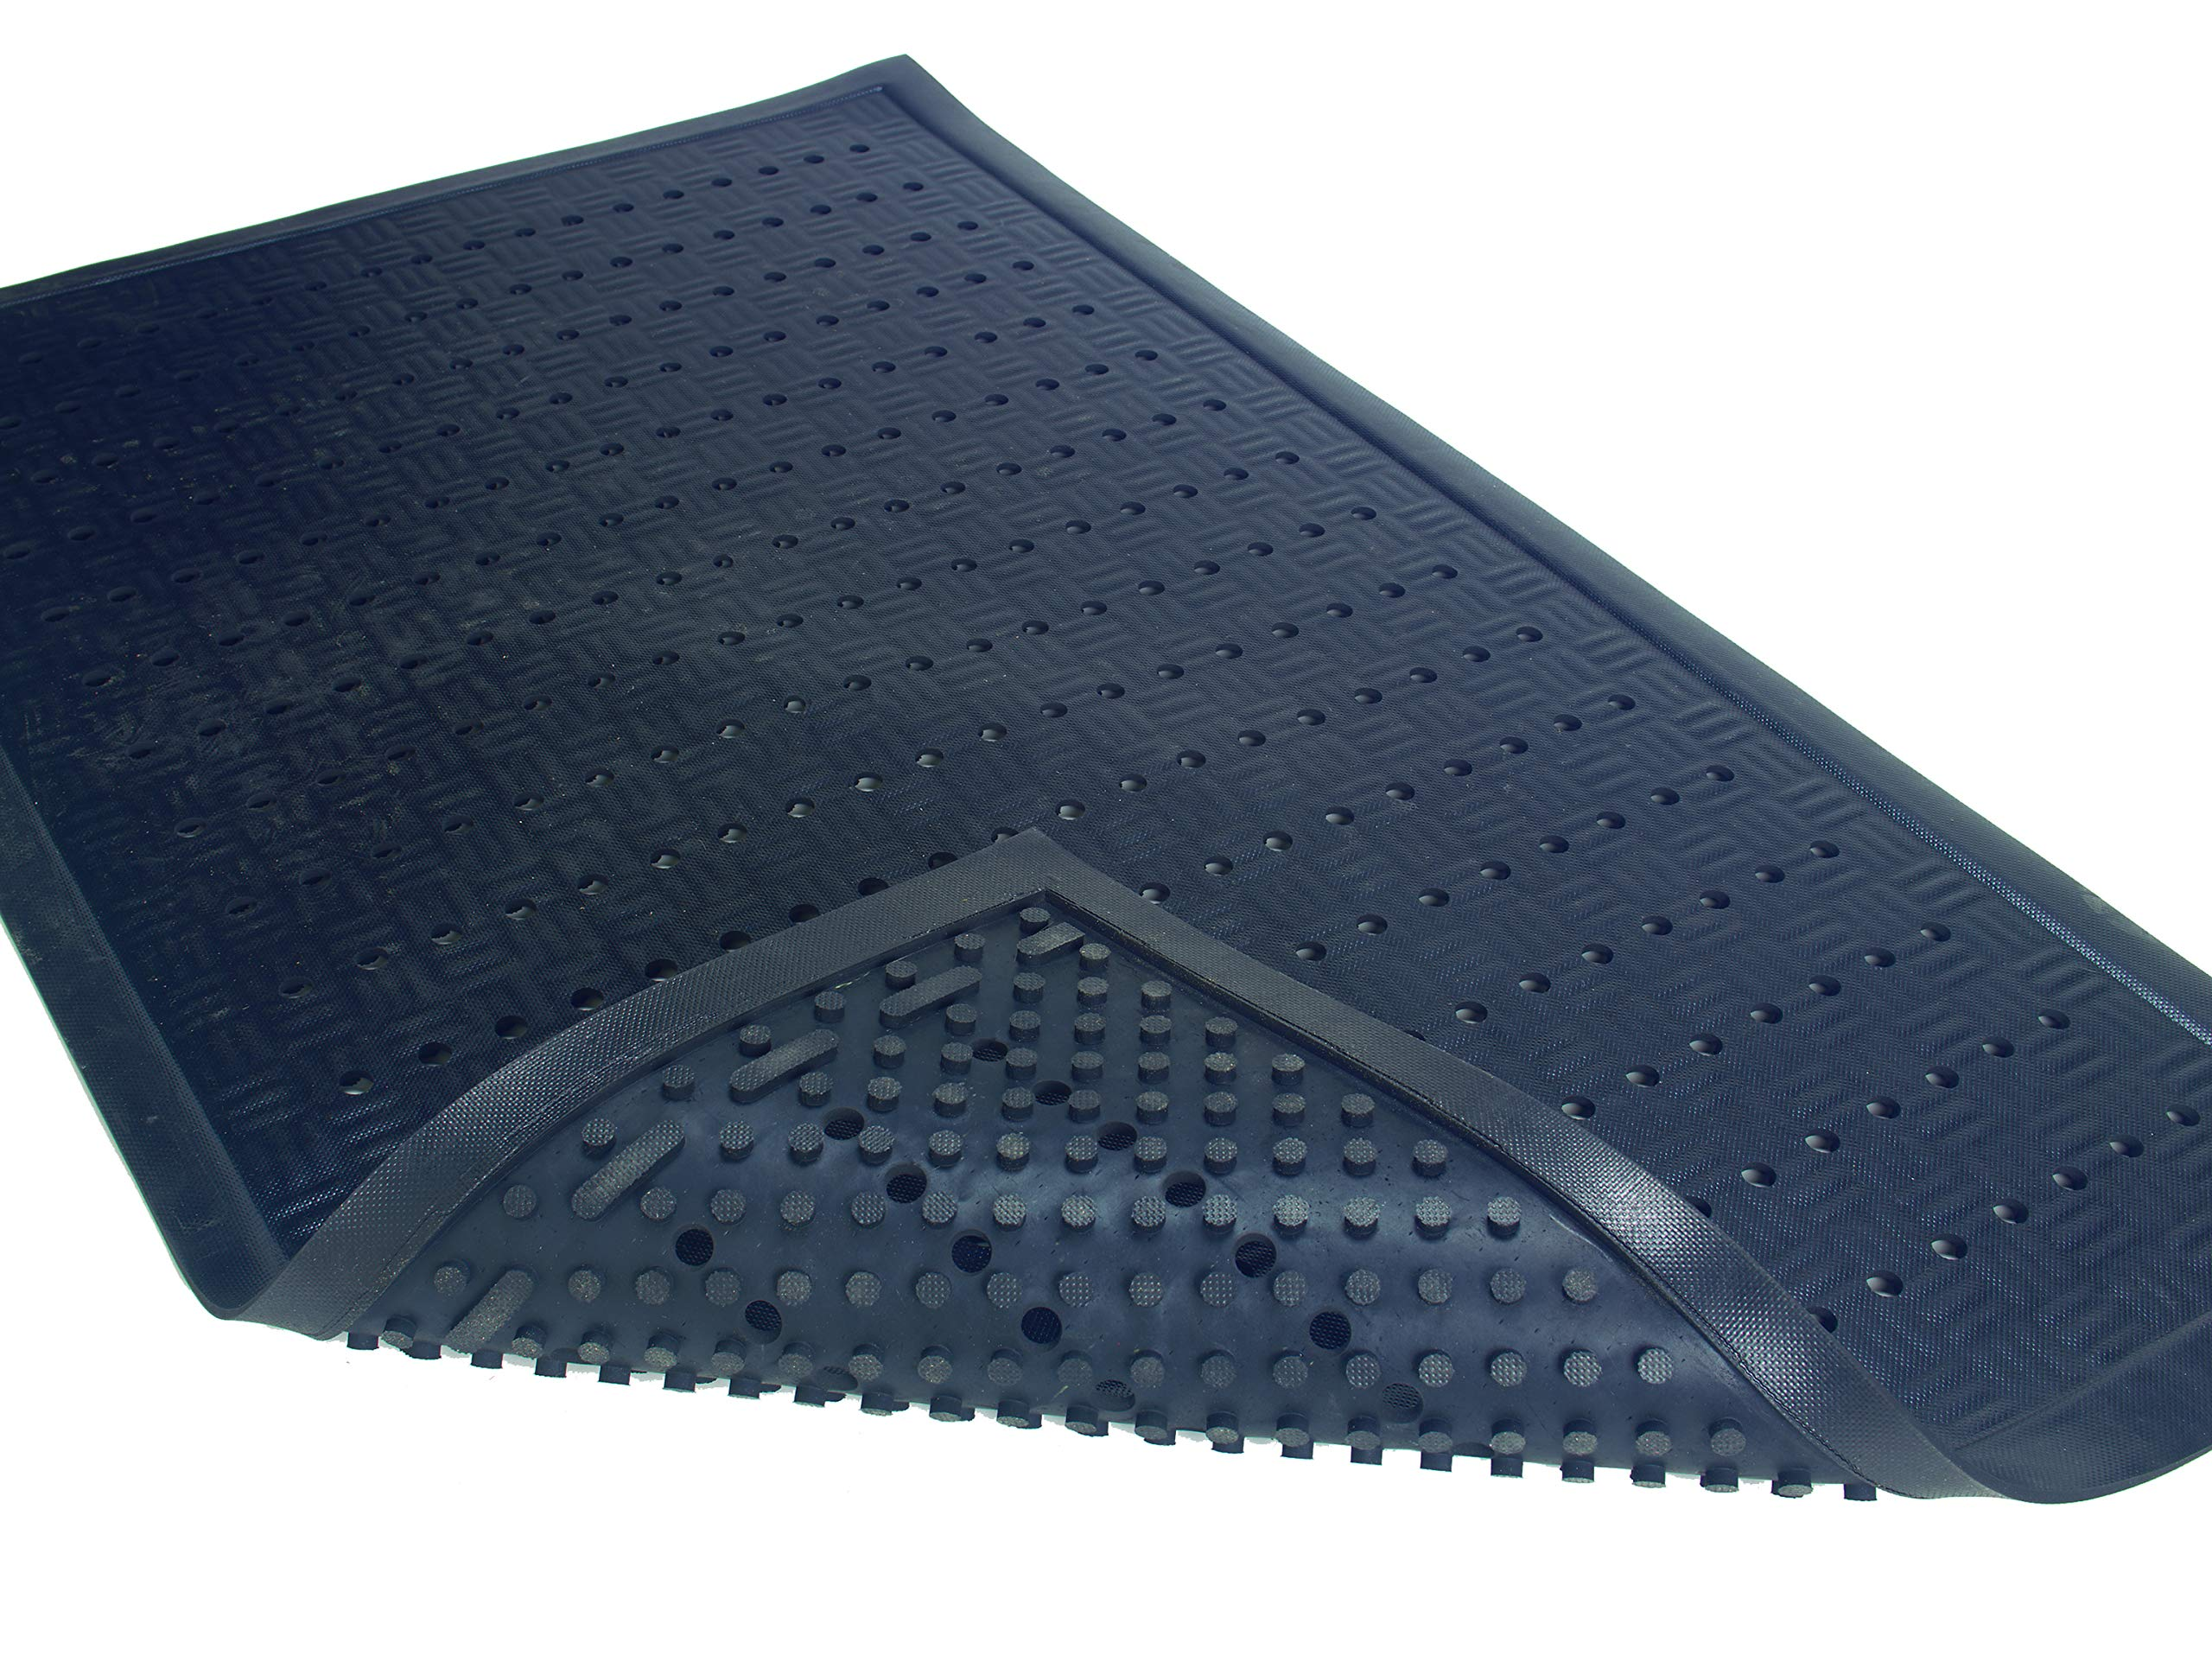 Cushion Station | Commercial-Grade Drainable Anti-Fatigue Mat - Slip Resistant, Antimicrobial, Grease and Oil Proof, Chemical Resistant, Welding Safe (Black 2' x 3.2') by M+A Matting